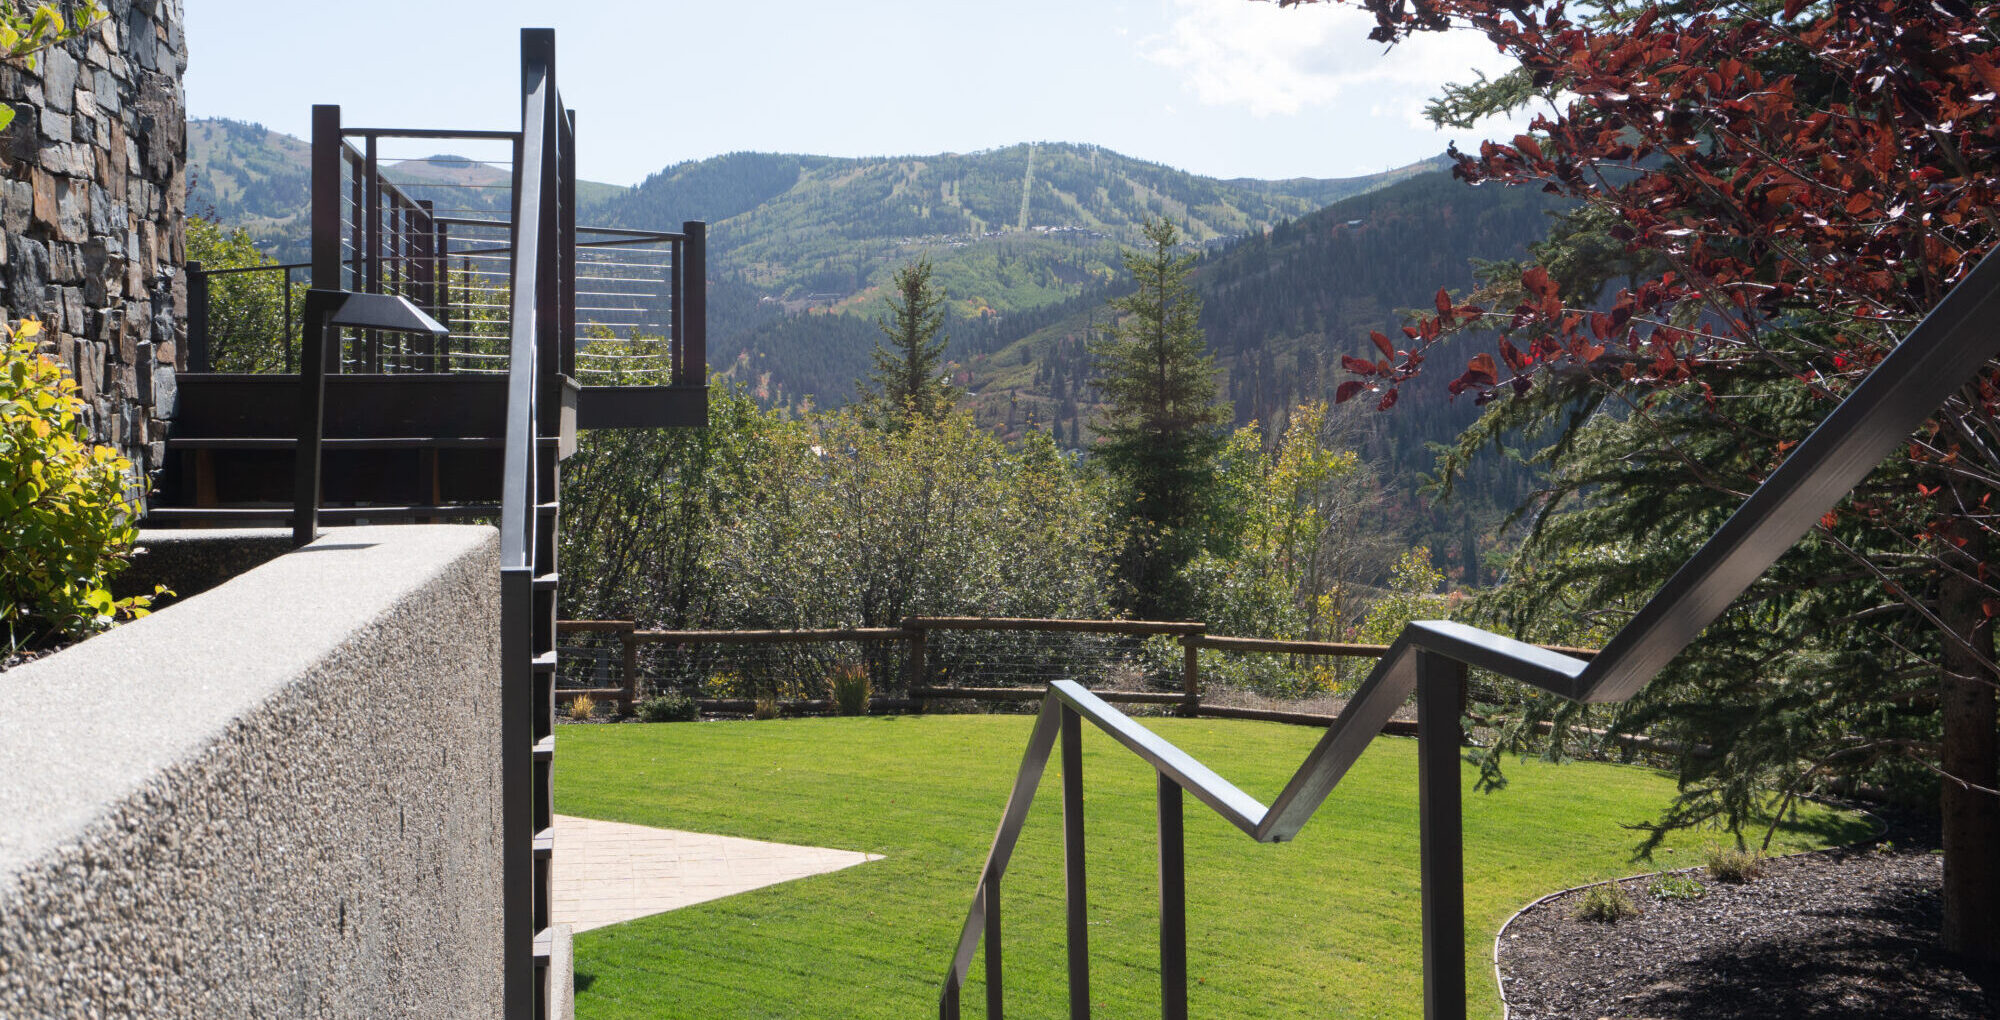 Outdoor stairs and railing leading to grass lawn overlooking mountains.